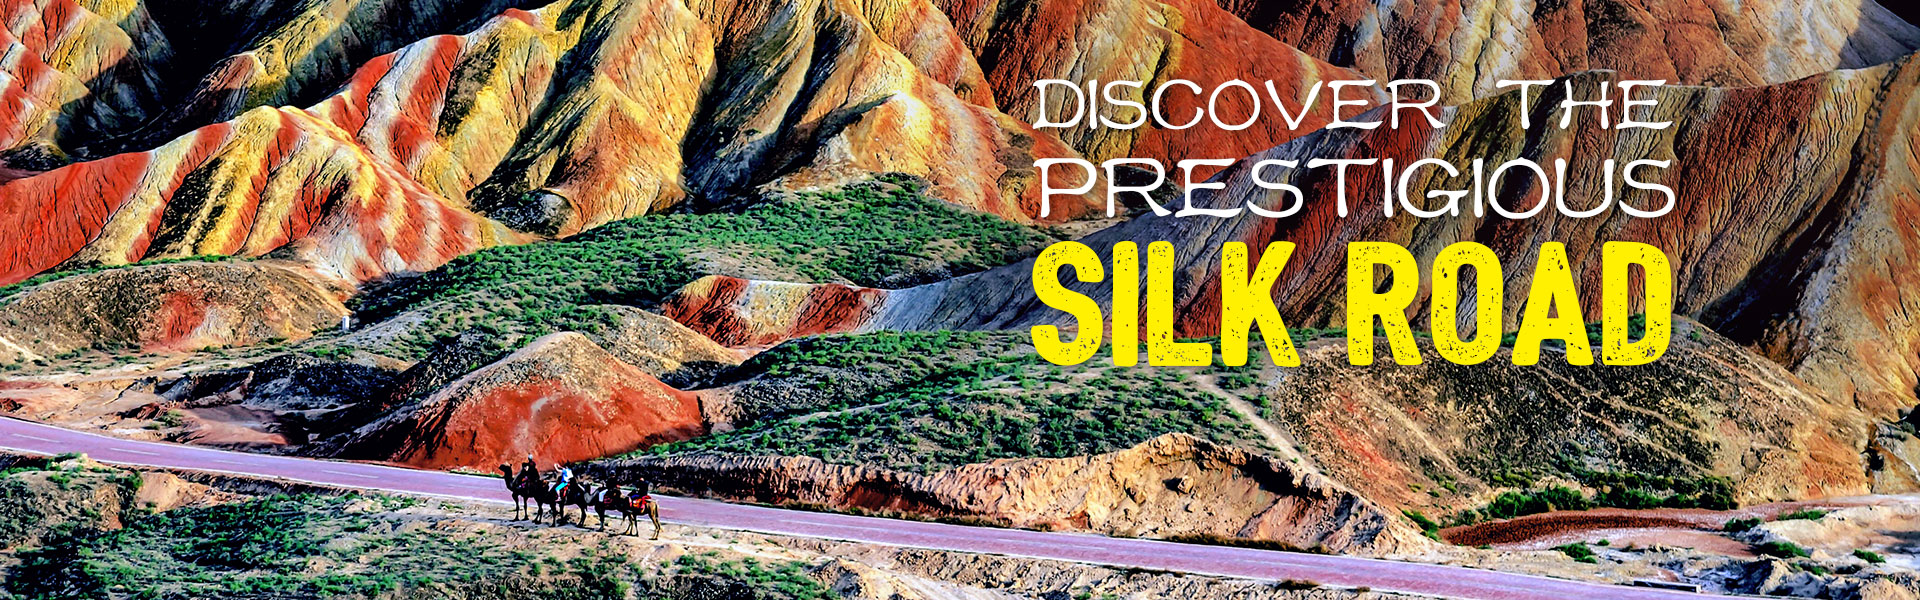 Discover the Prestigious Silk Road